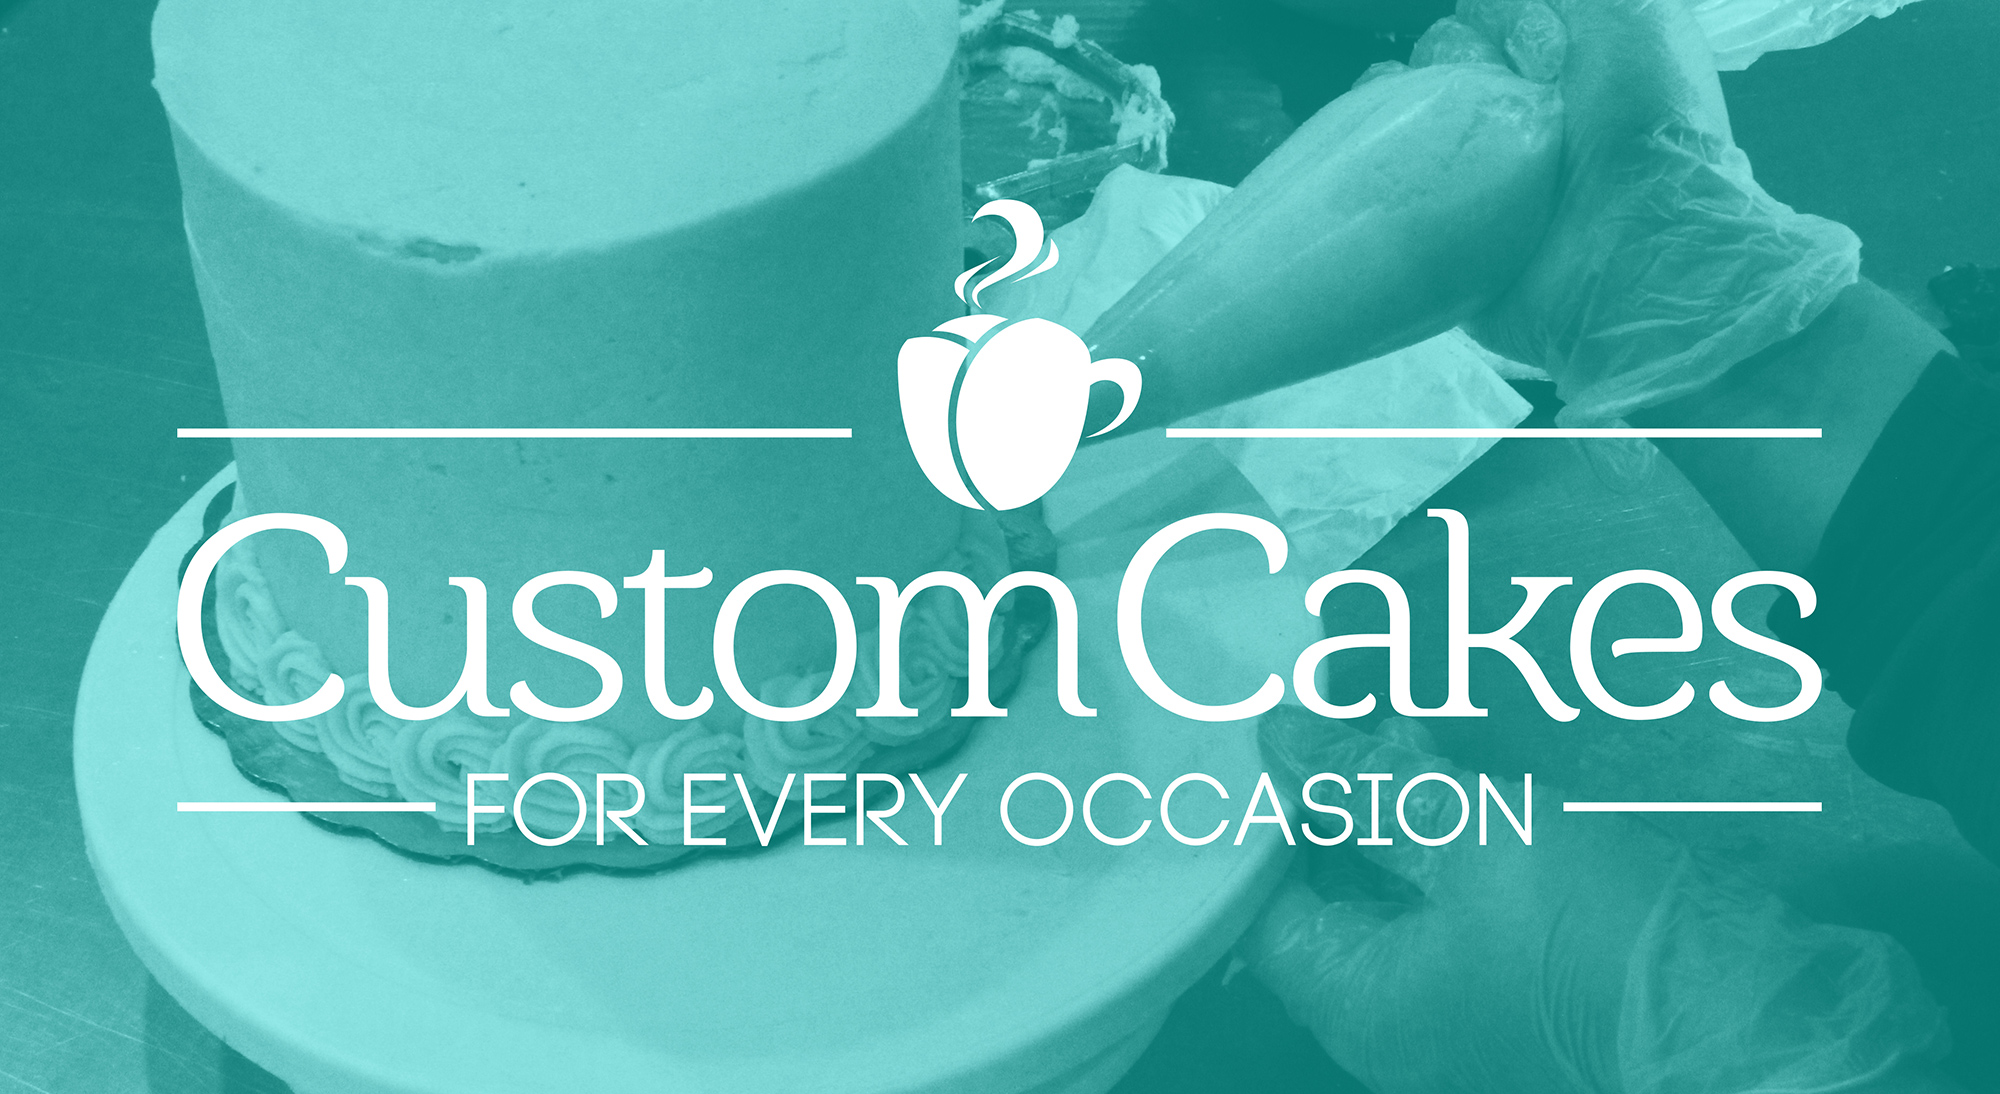 CustomCakes-Header.jpg